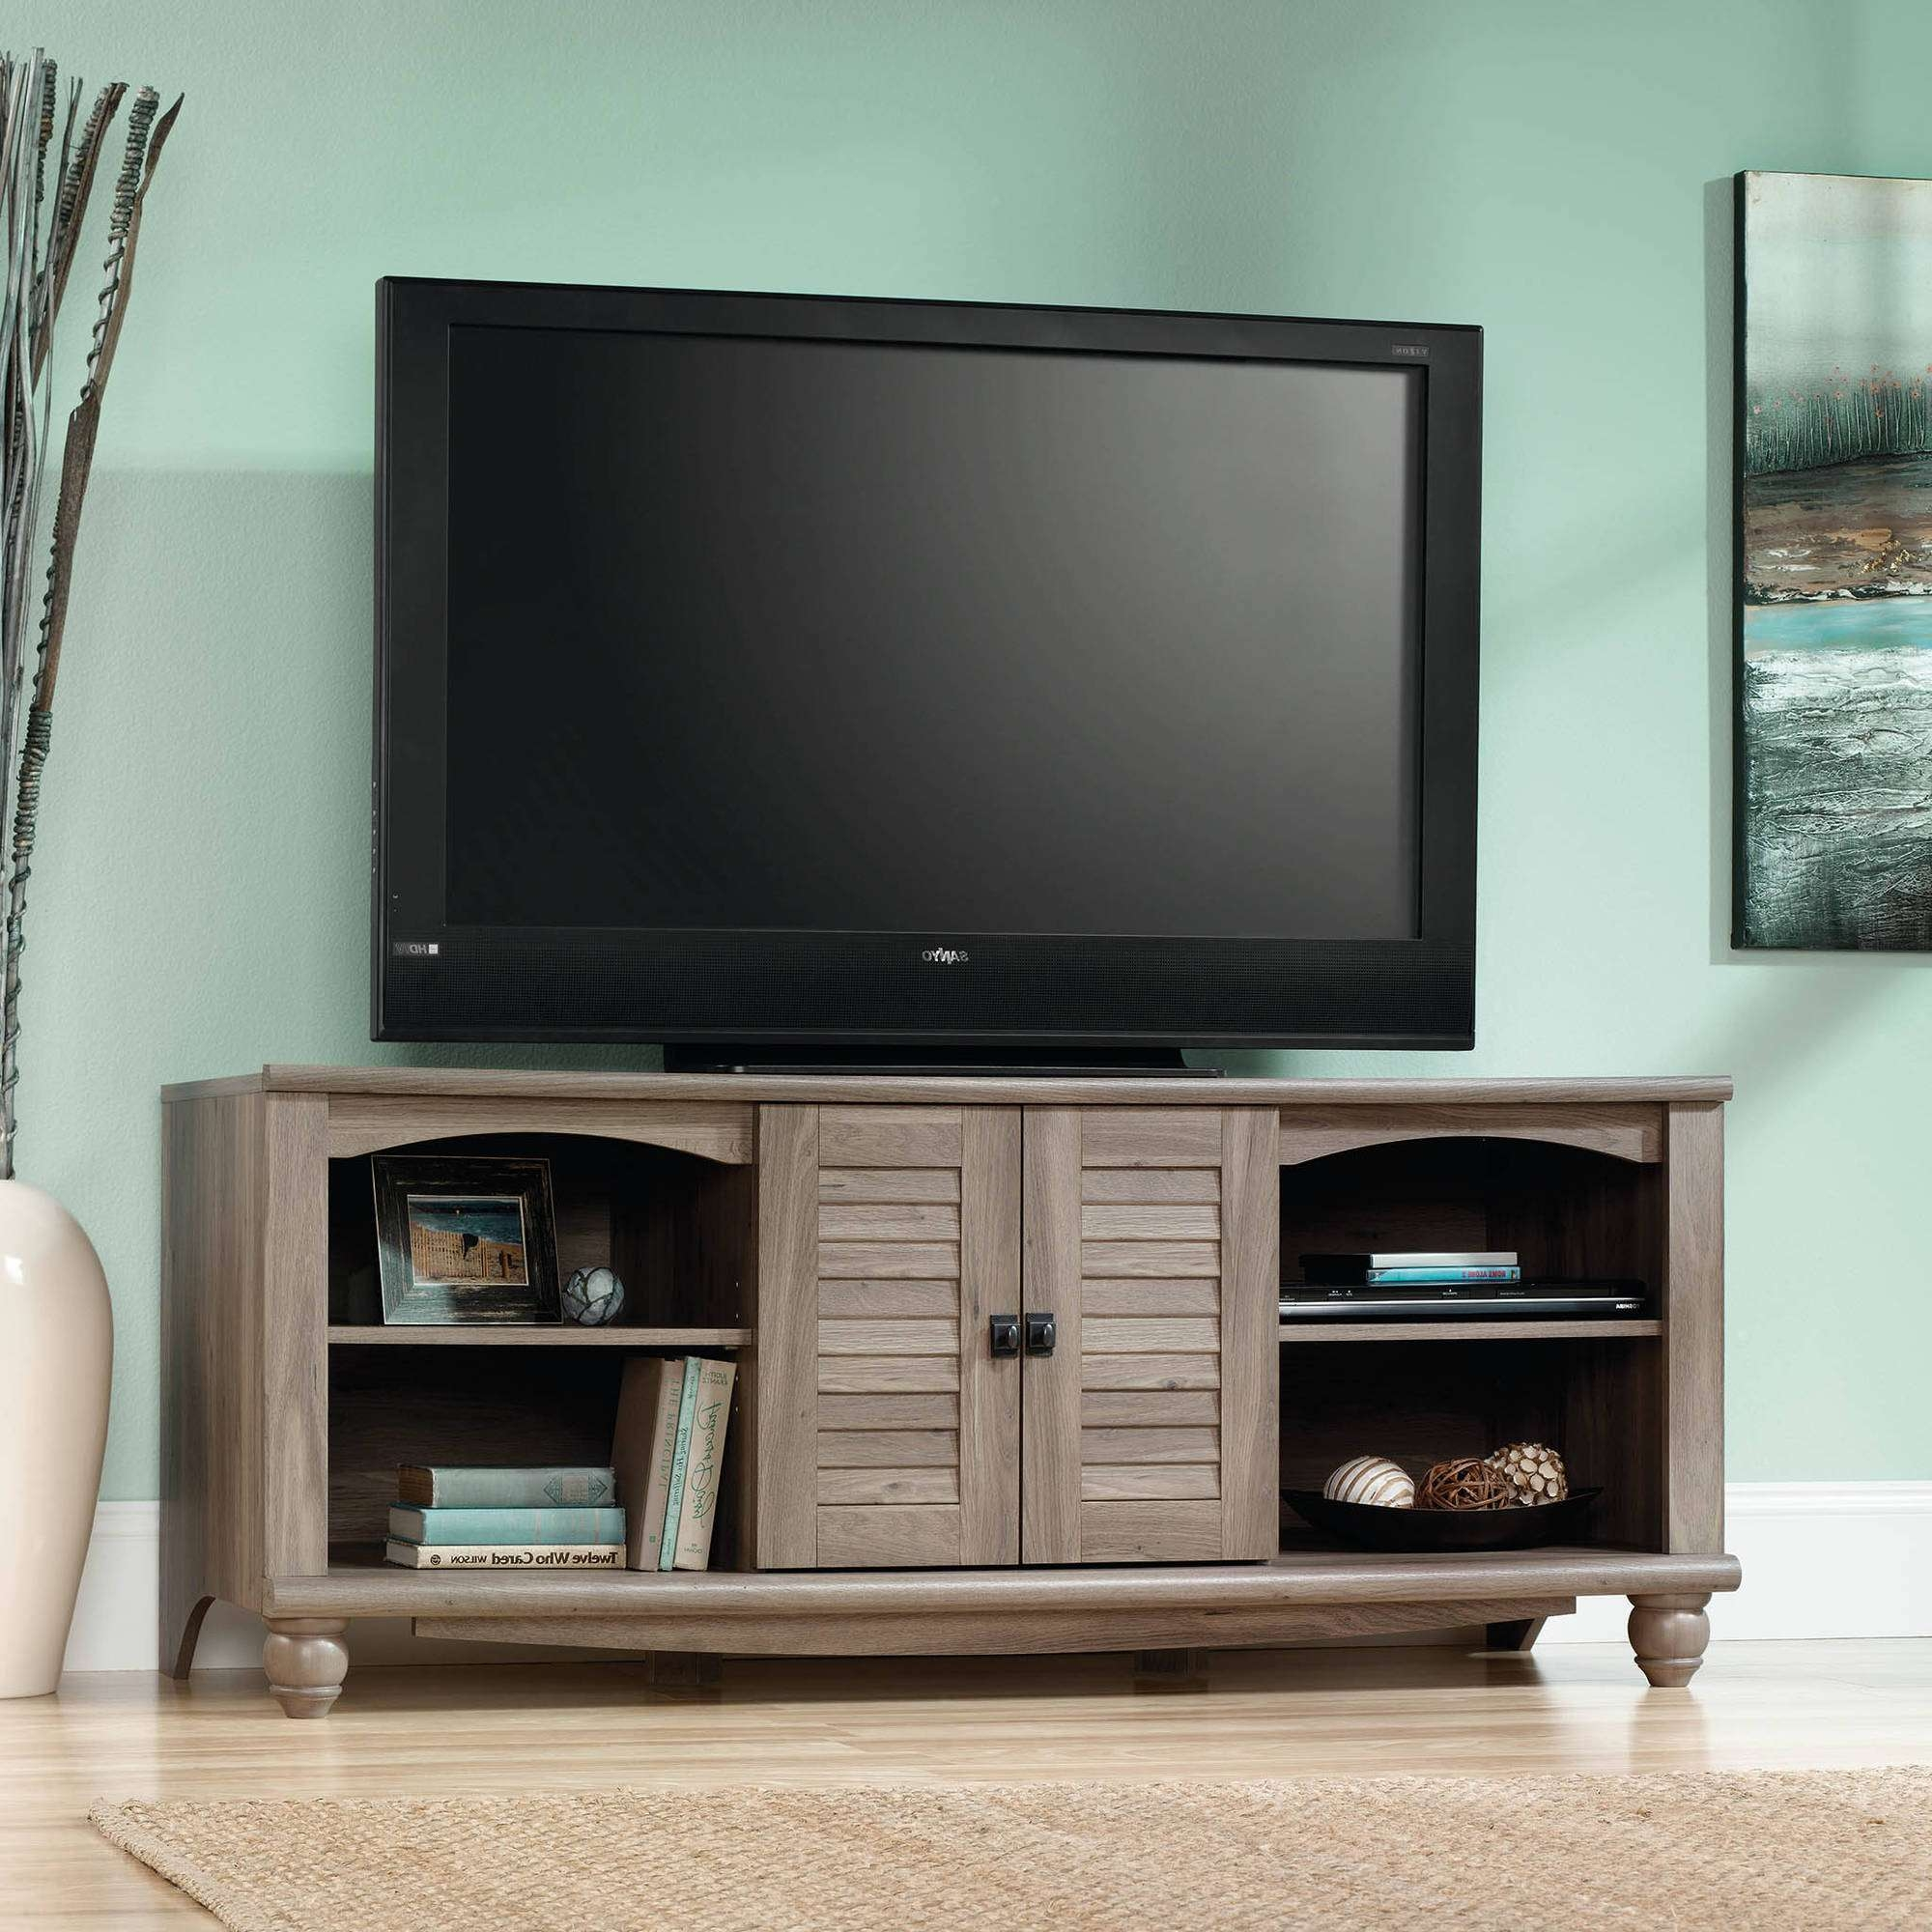 Tv Stands & Entertainment Centers – Walmart Regarding Tv Stands With Baskets (View 7 of 15)